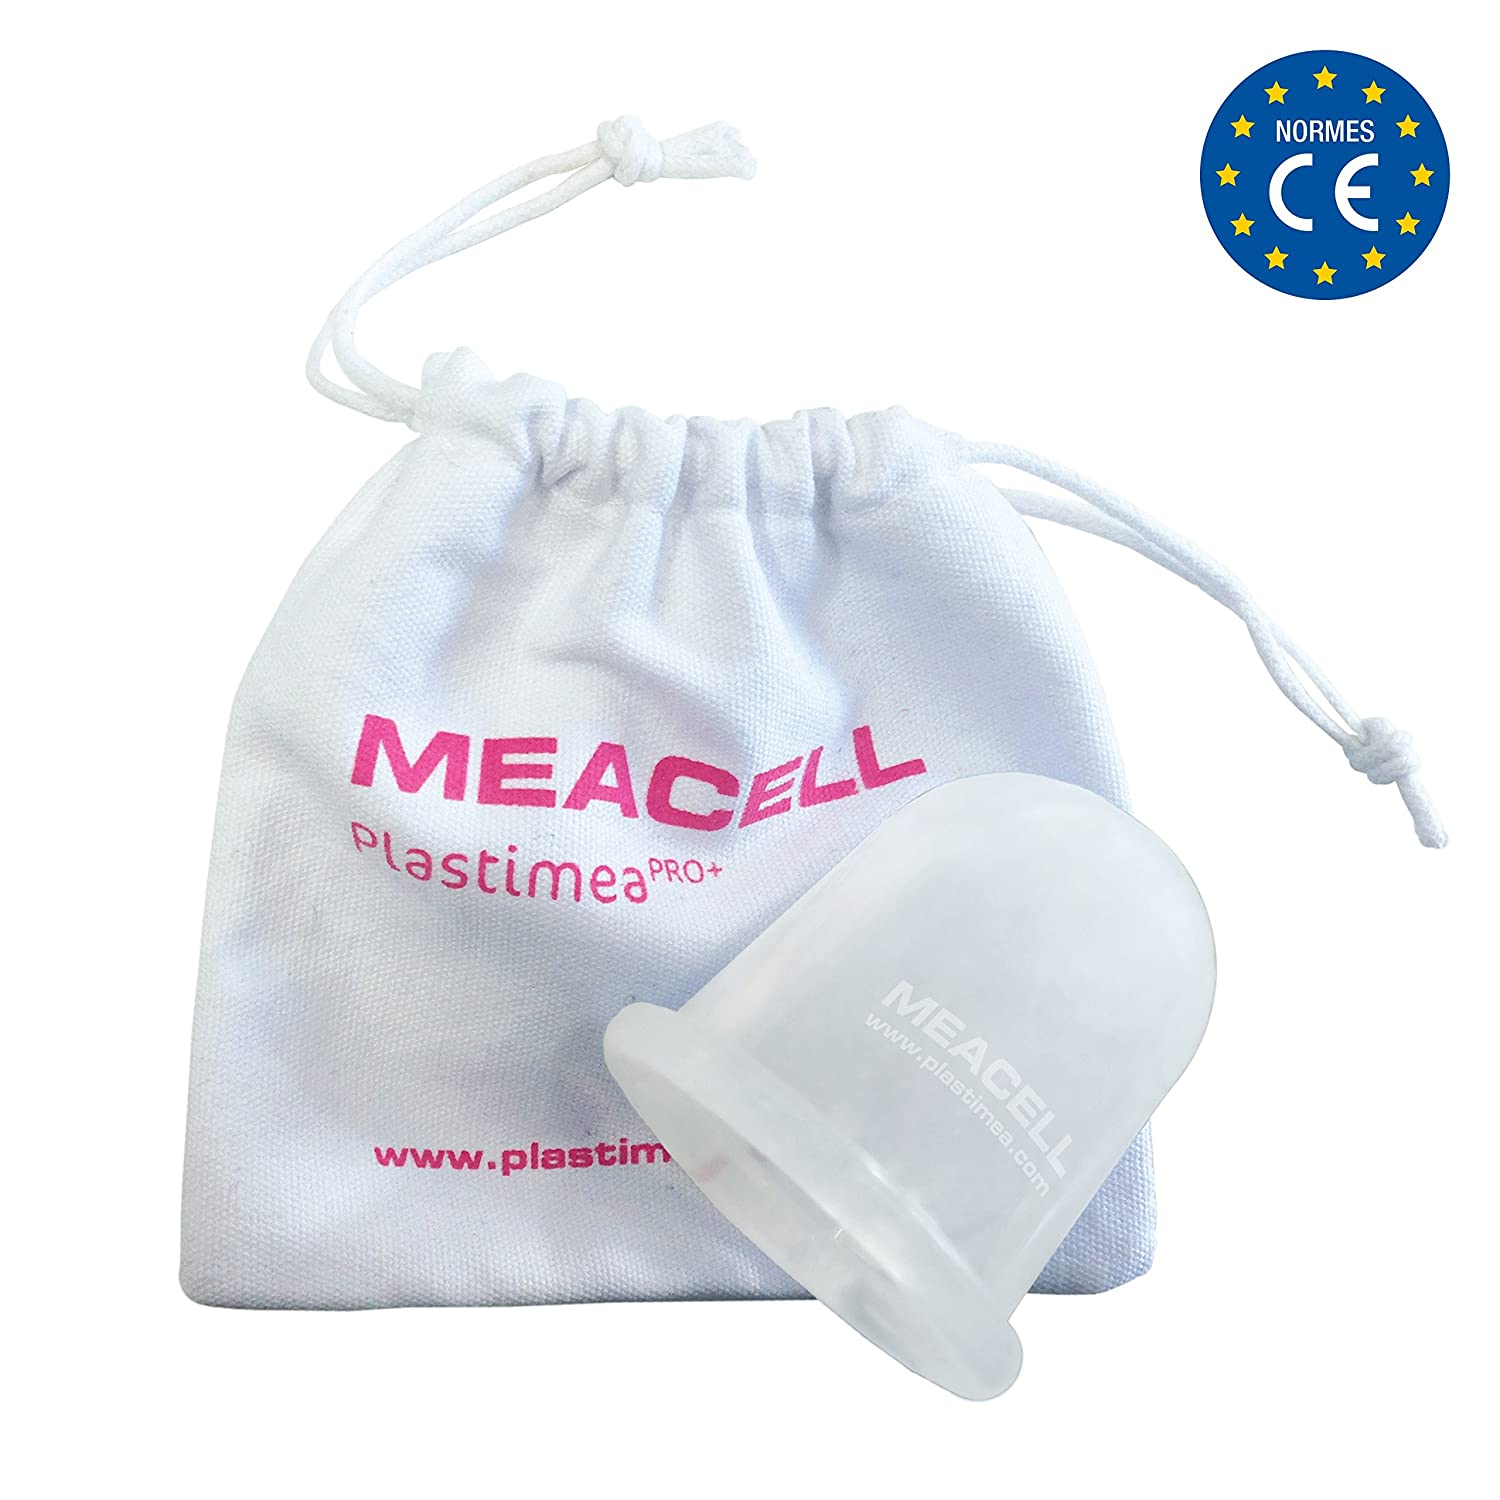 MEACELL - Silicone Cupping - Anti Cellulite Massage Cup - 100% Hypoallergenic Silicone - only 5 min per day - Revolutionary and Natural way to remove orange peel skin Plastimea Pro +